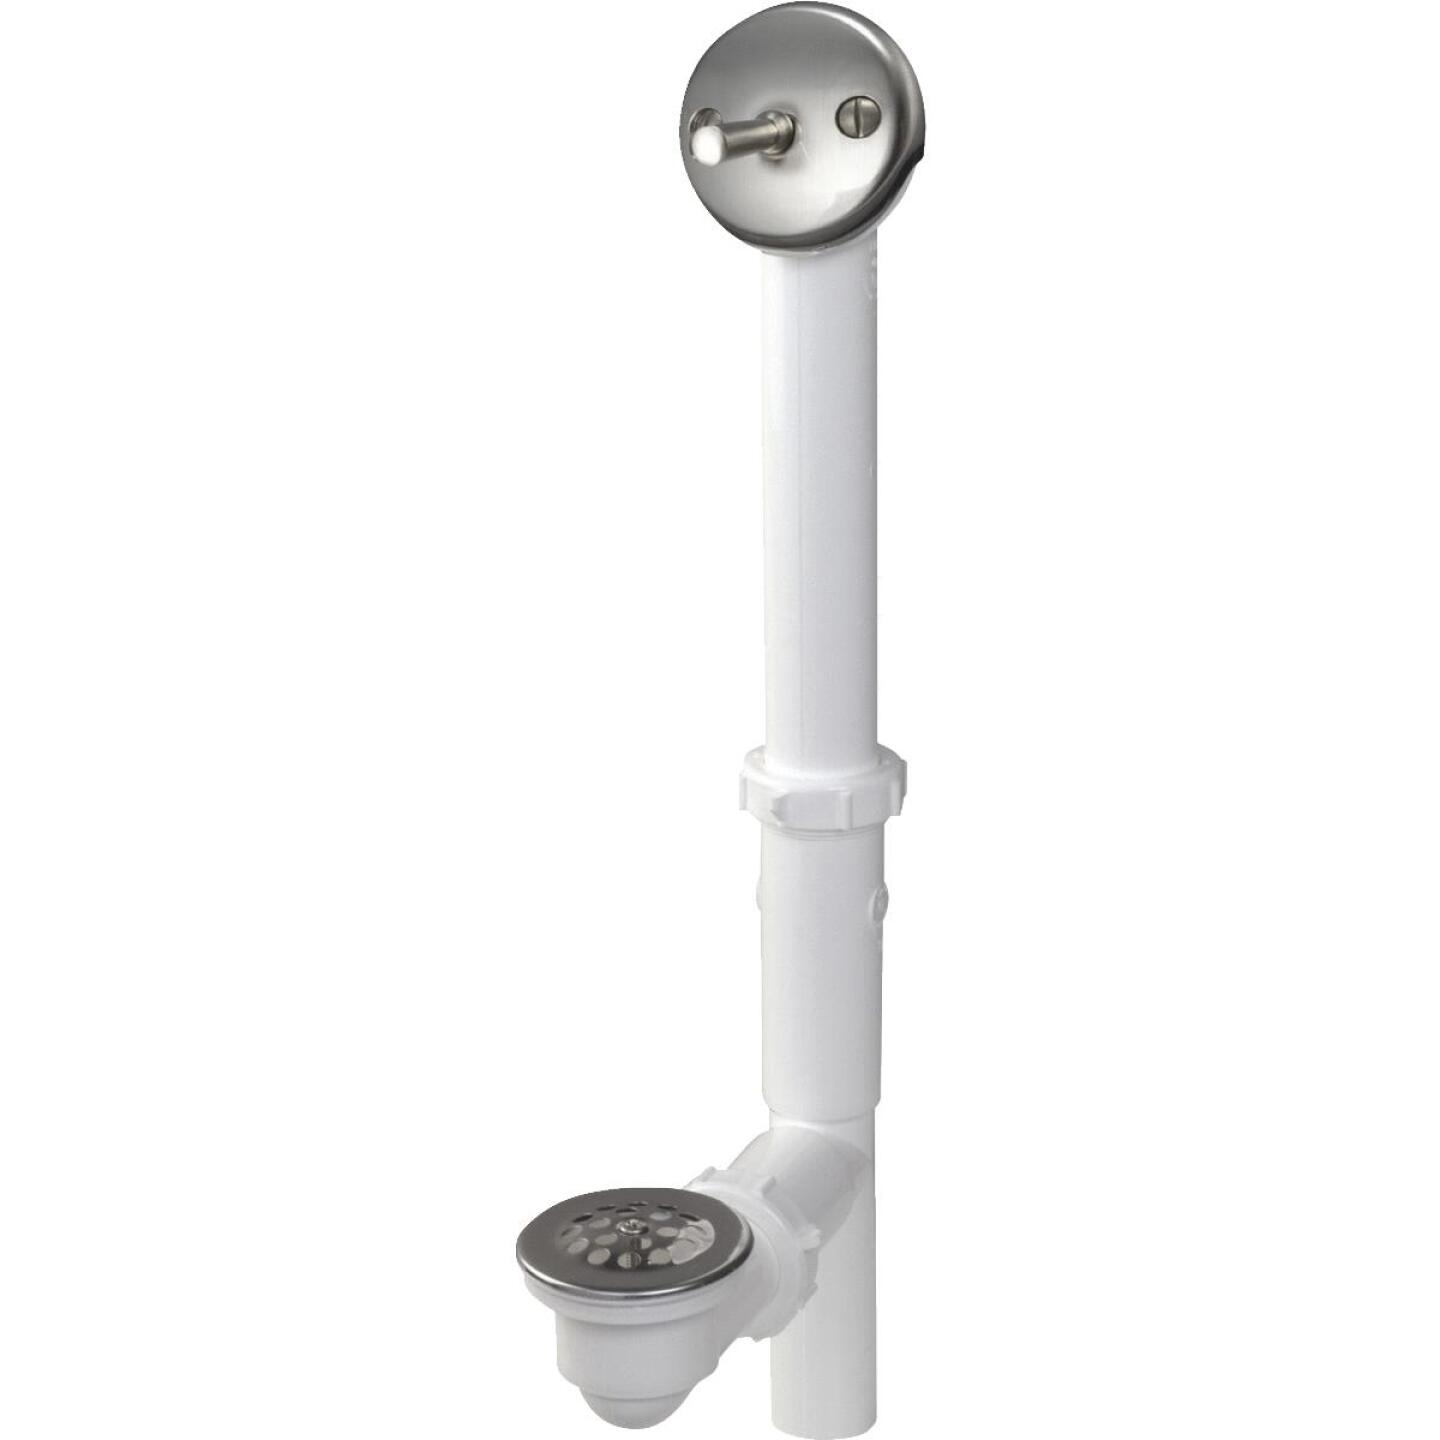 Do it White Plastic Trip Lever Bath Drain with Brushed Nickel Trim and Strainer & Dome Grid Image 1